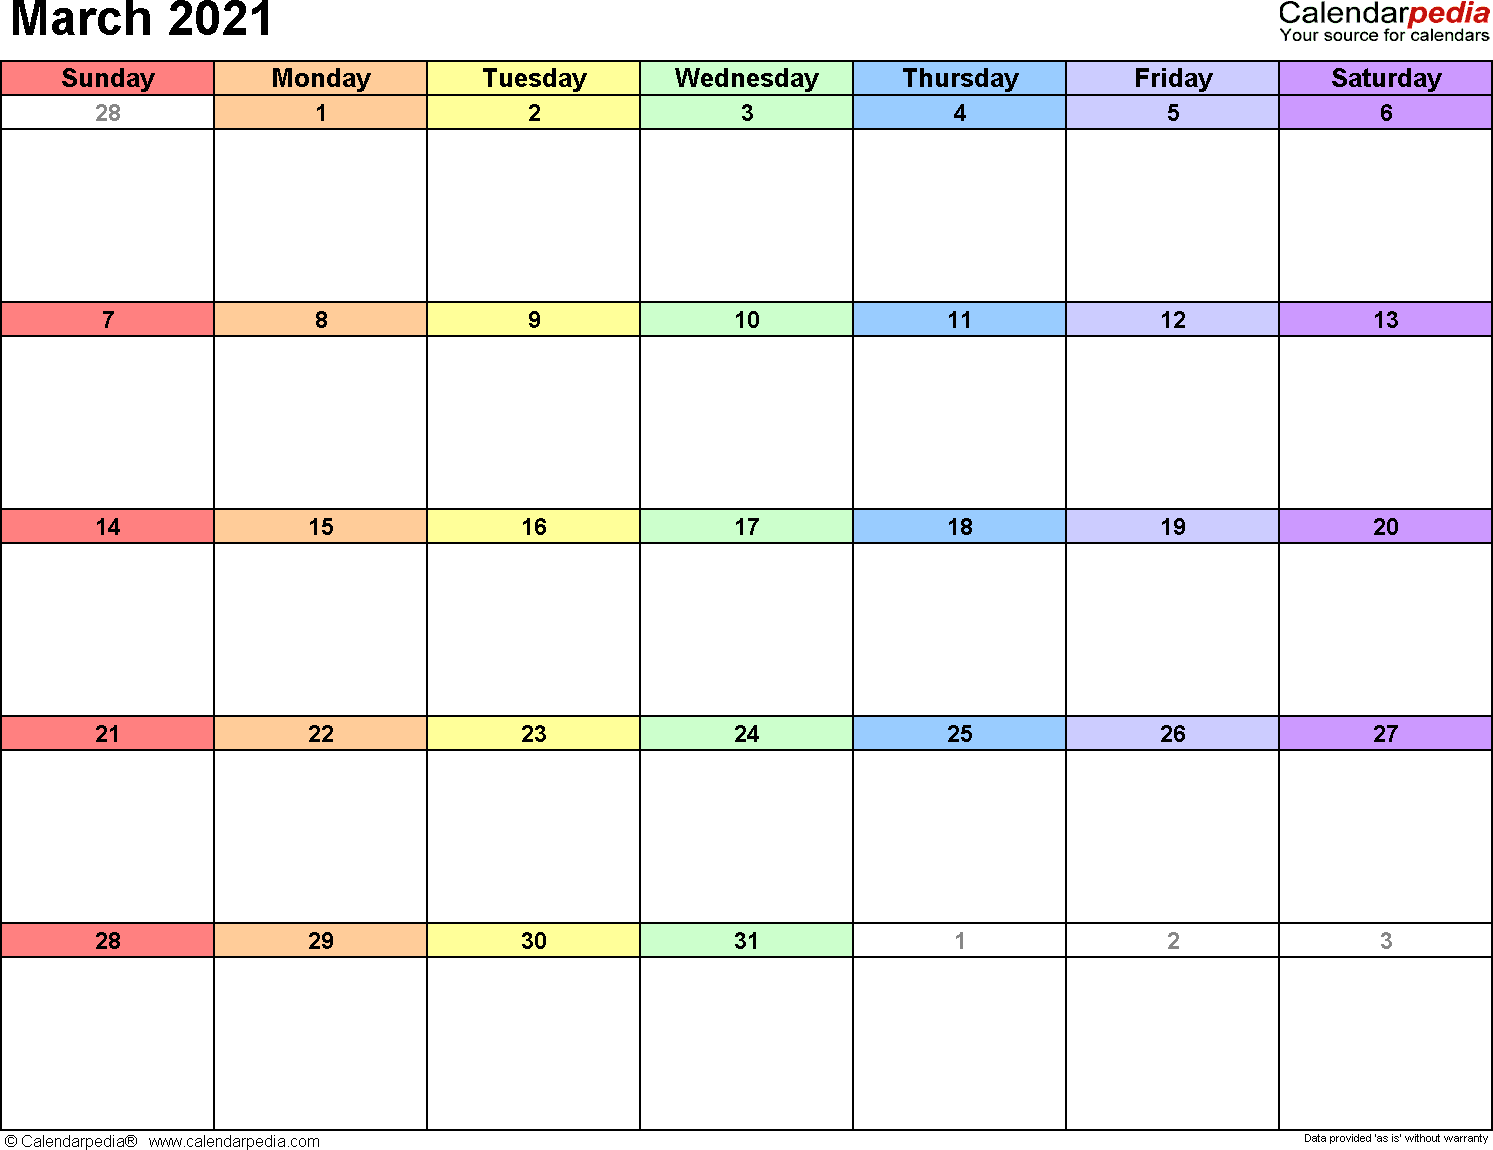 March 2021 - calendar templates for Word, Excel and PDF